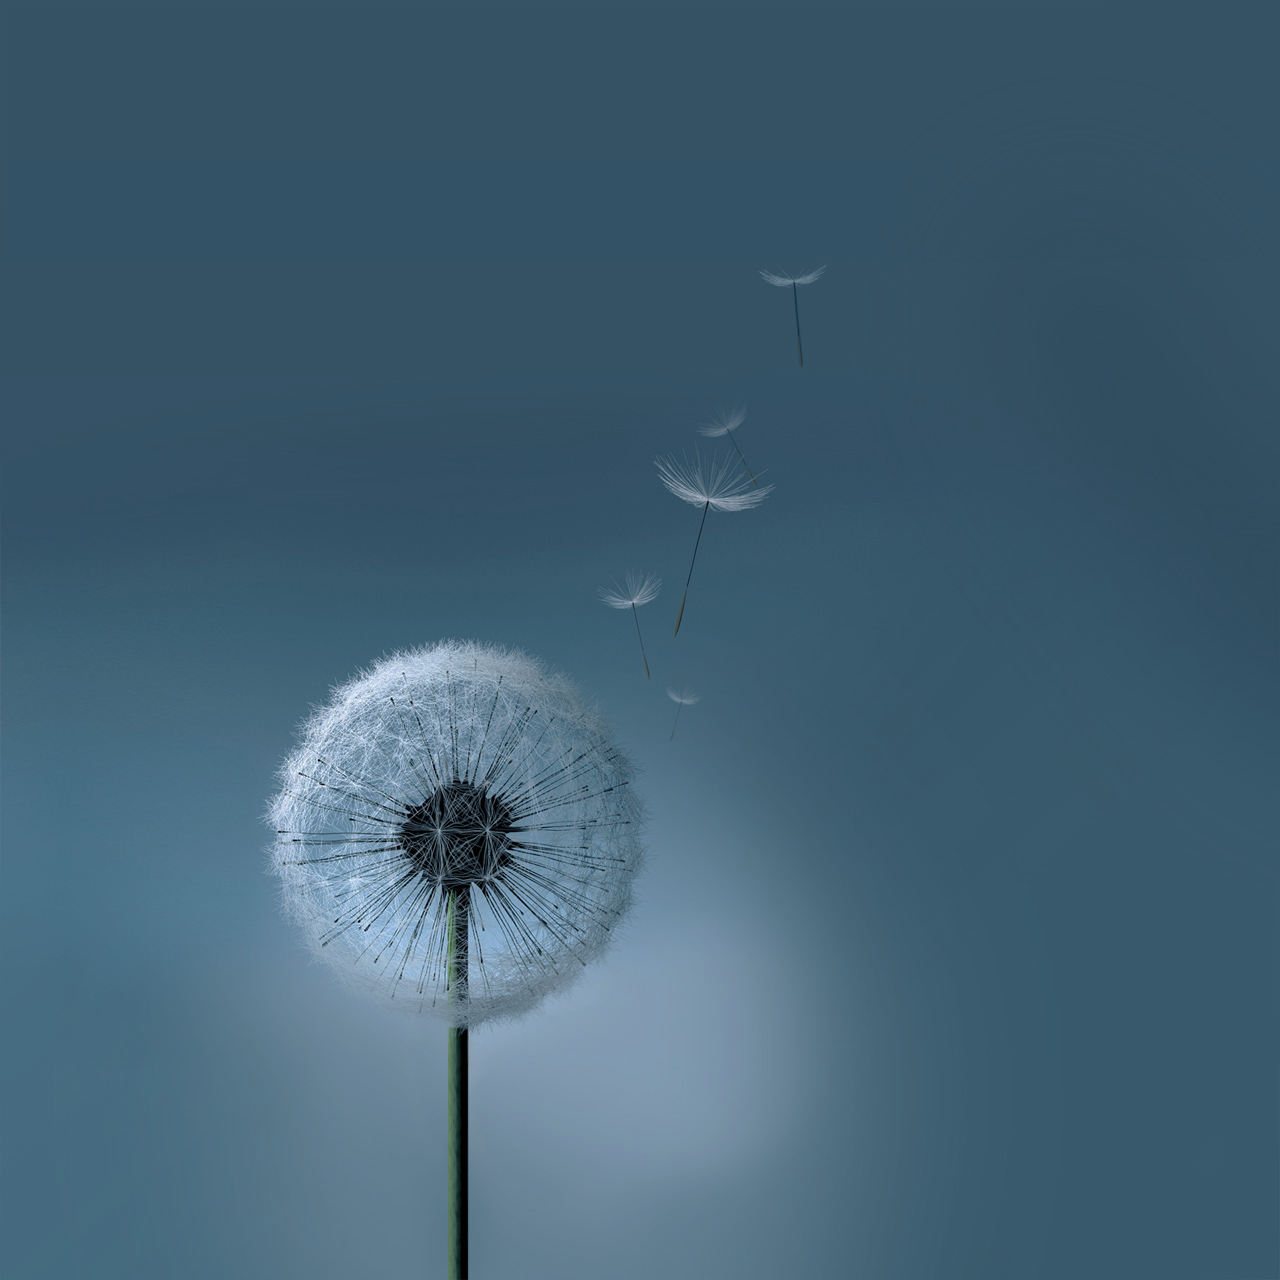 dandelion cell phone wallpaper quotes - photo #21